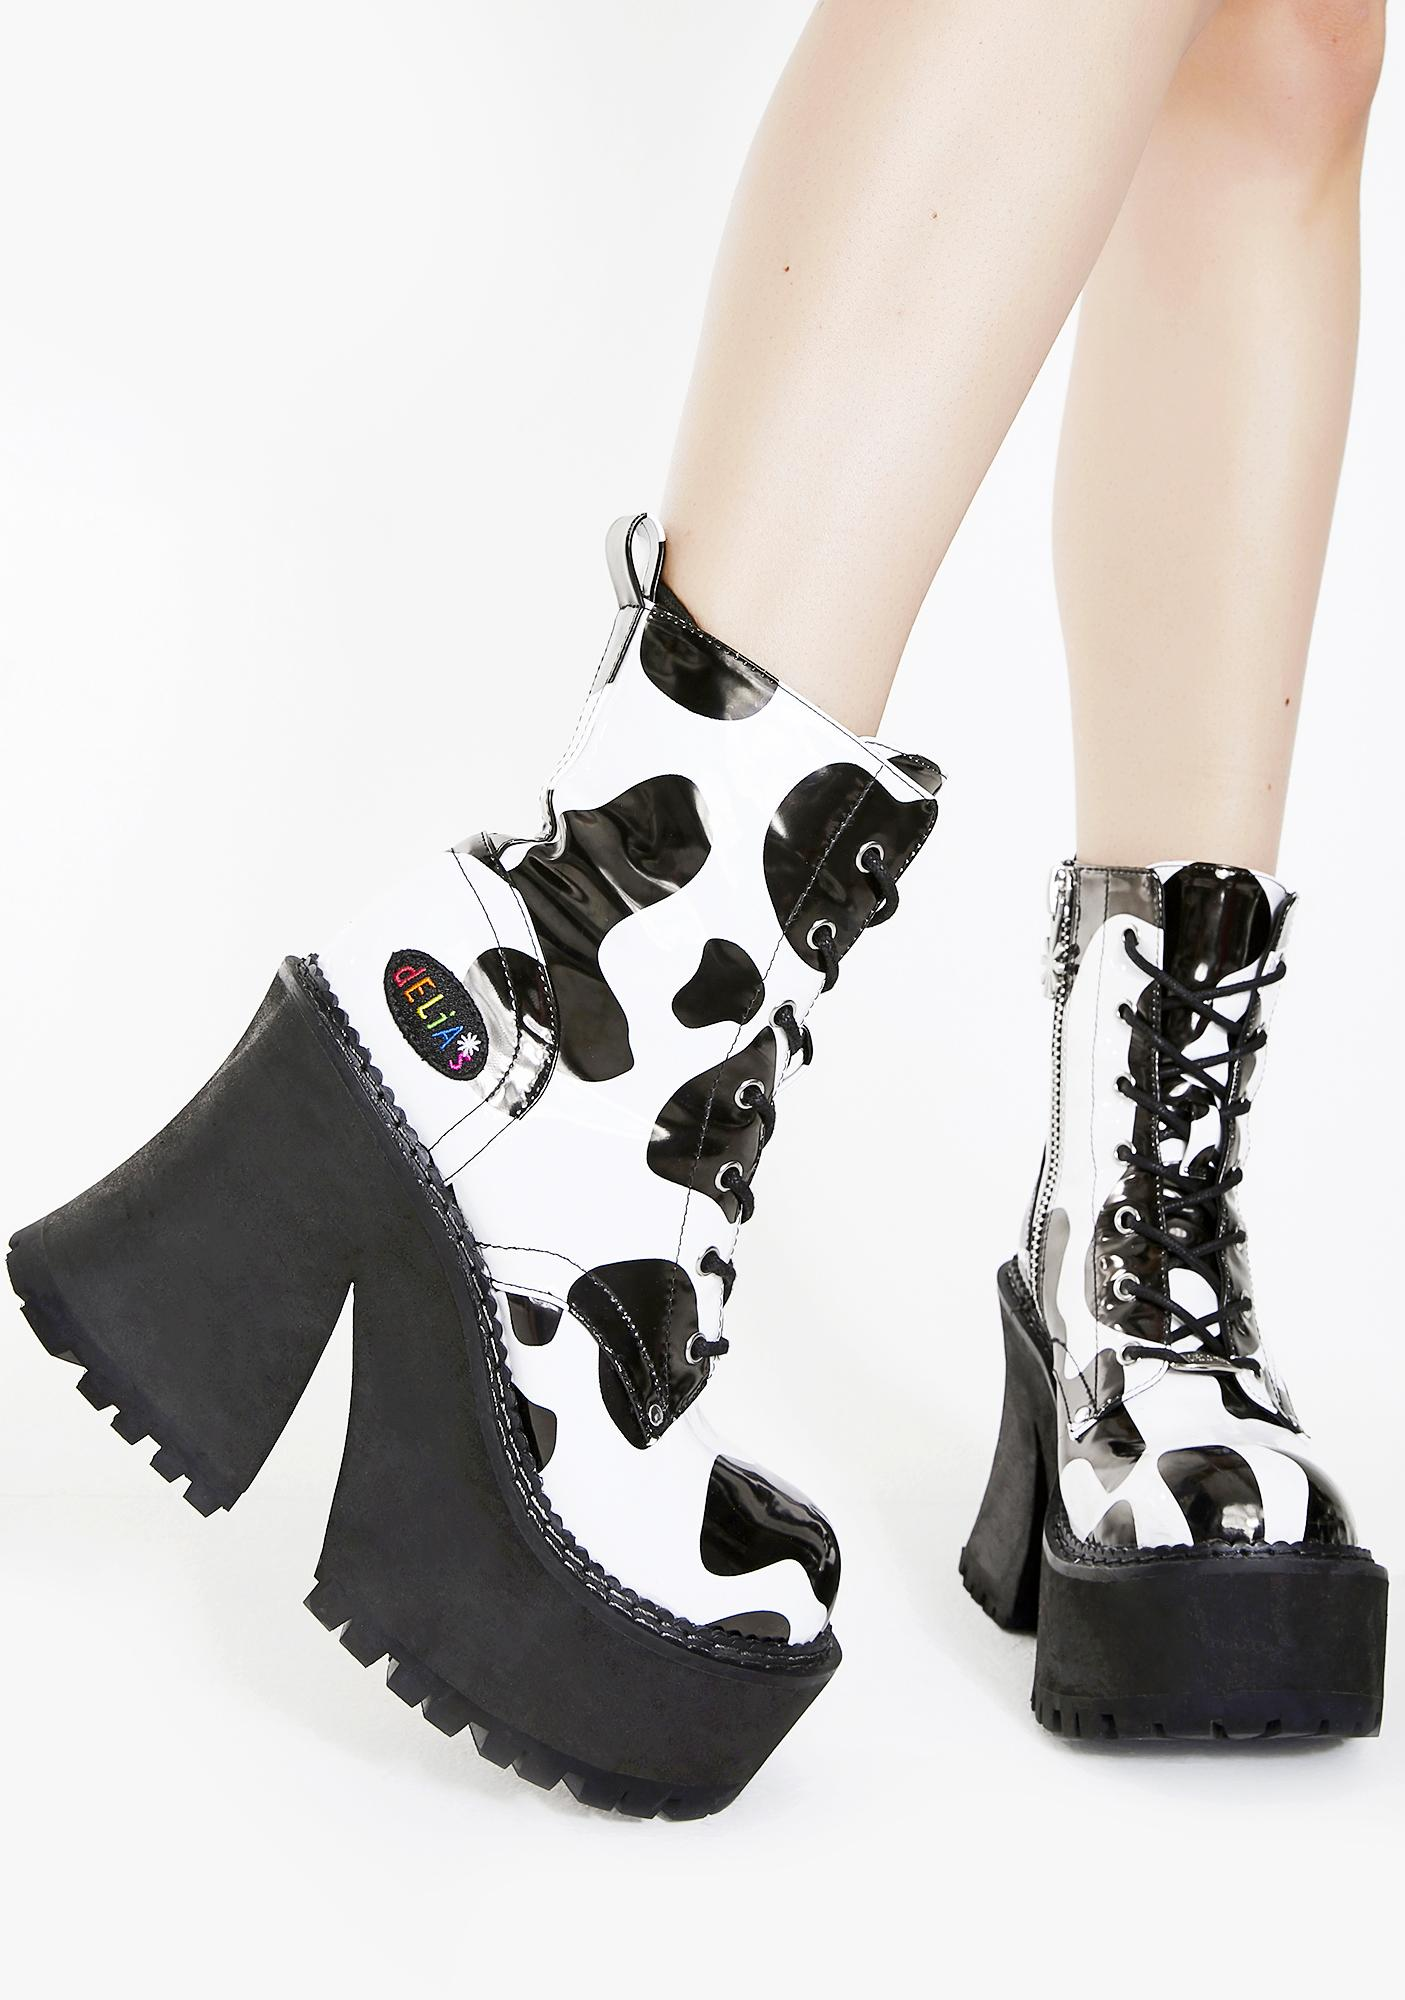 ba5f7c91df dELiA s by Dolls Kill Animal Behavior Platform Boots